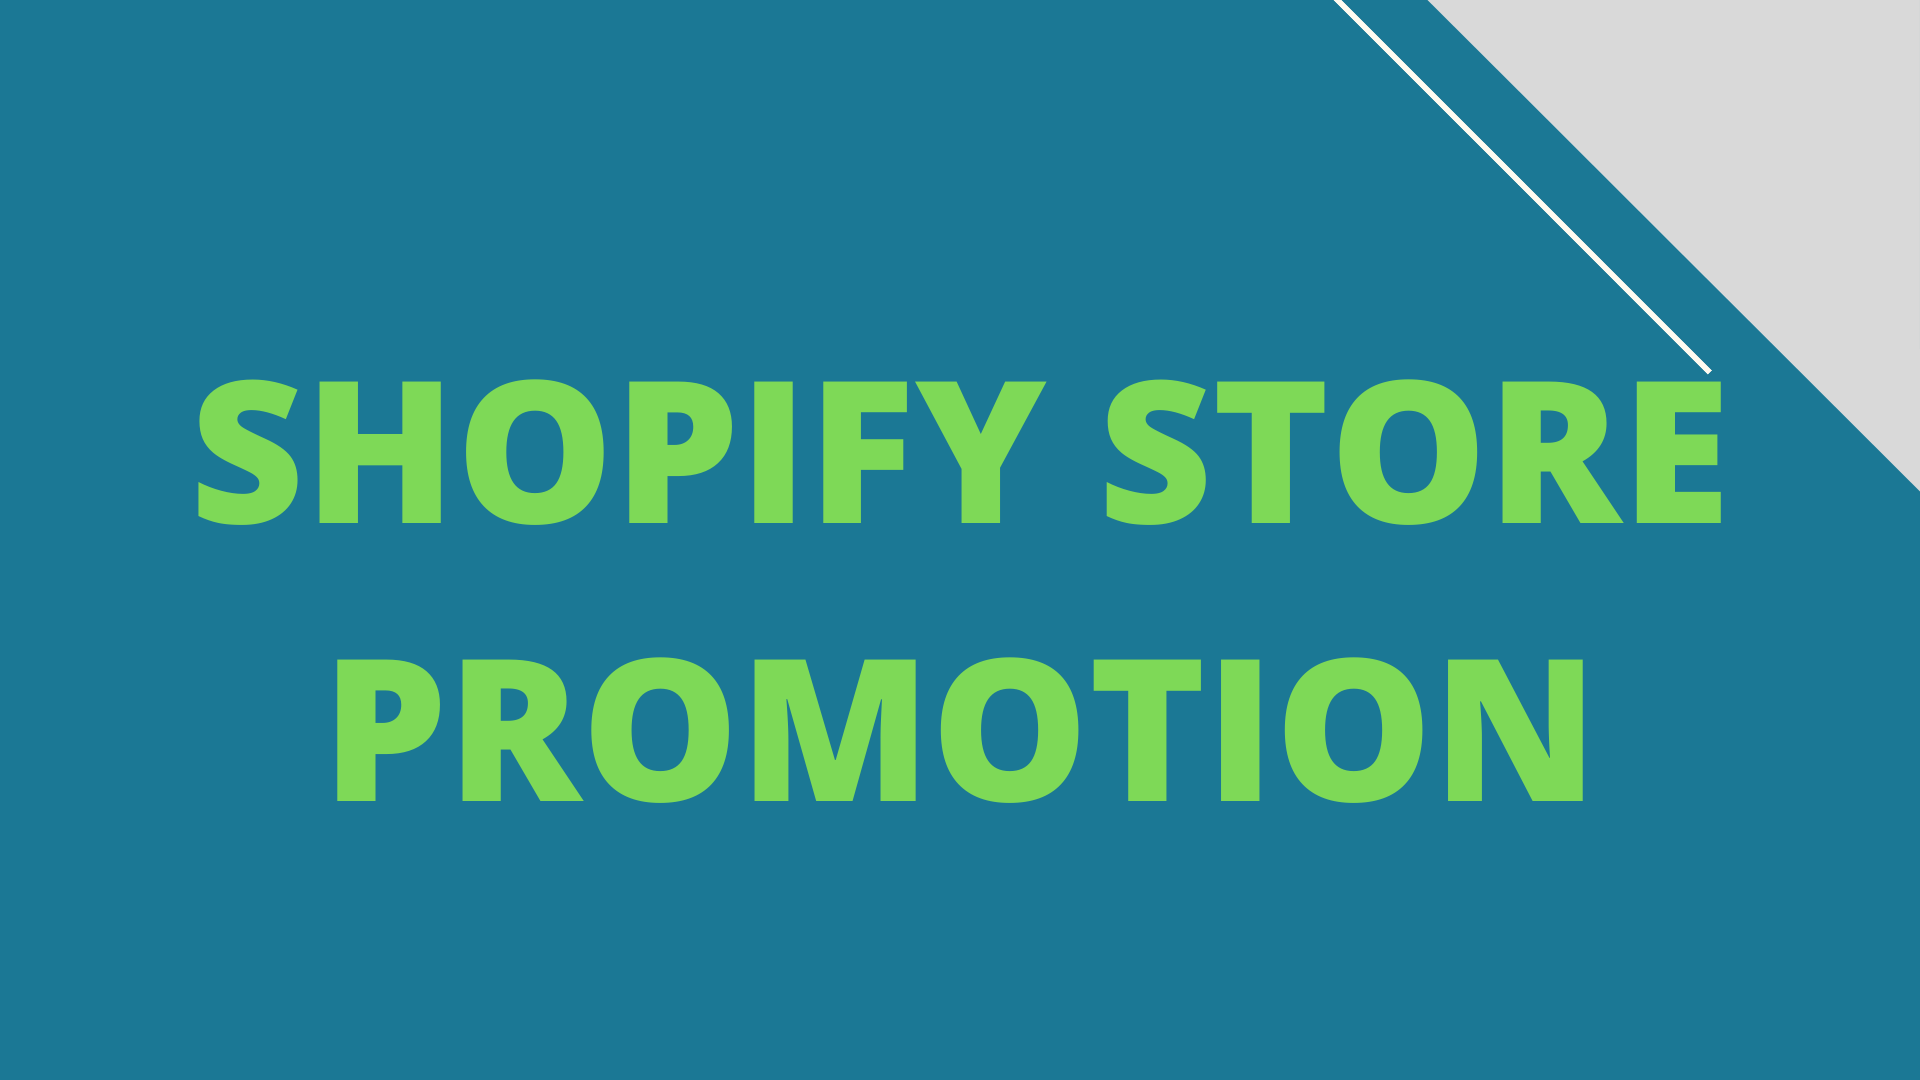 I will provide shopif shop promotion by multi plus backlinks